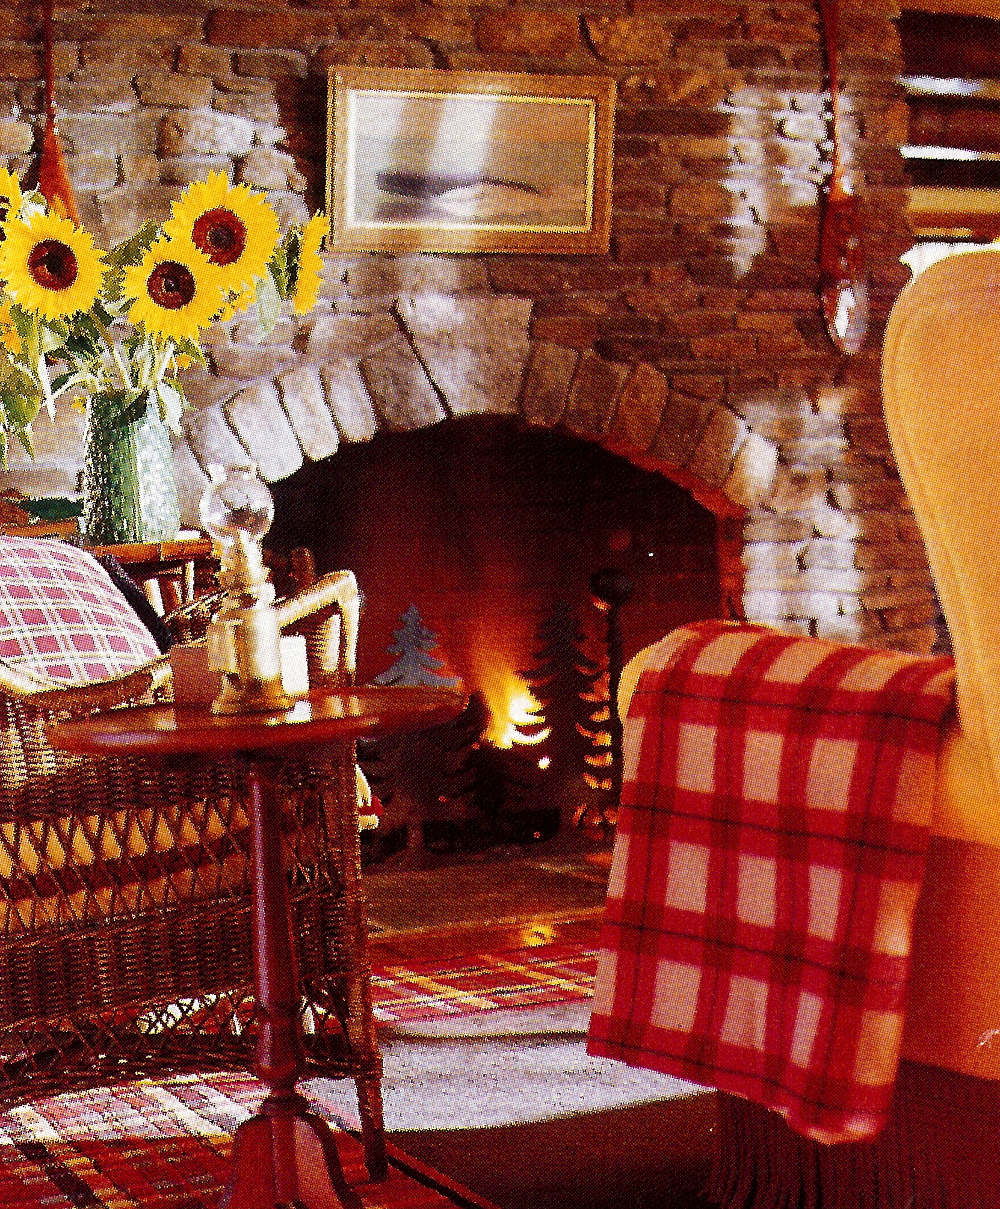 fishing camp - sitting room with traditional Adirondack stone fireplace - Country Living via Atticmag